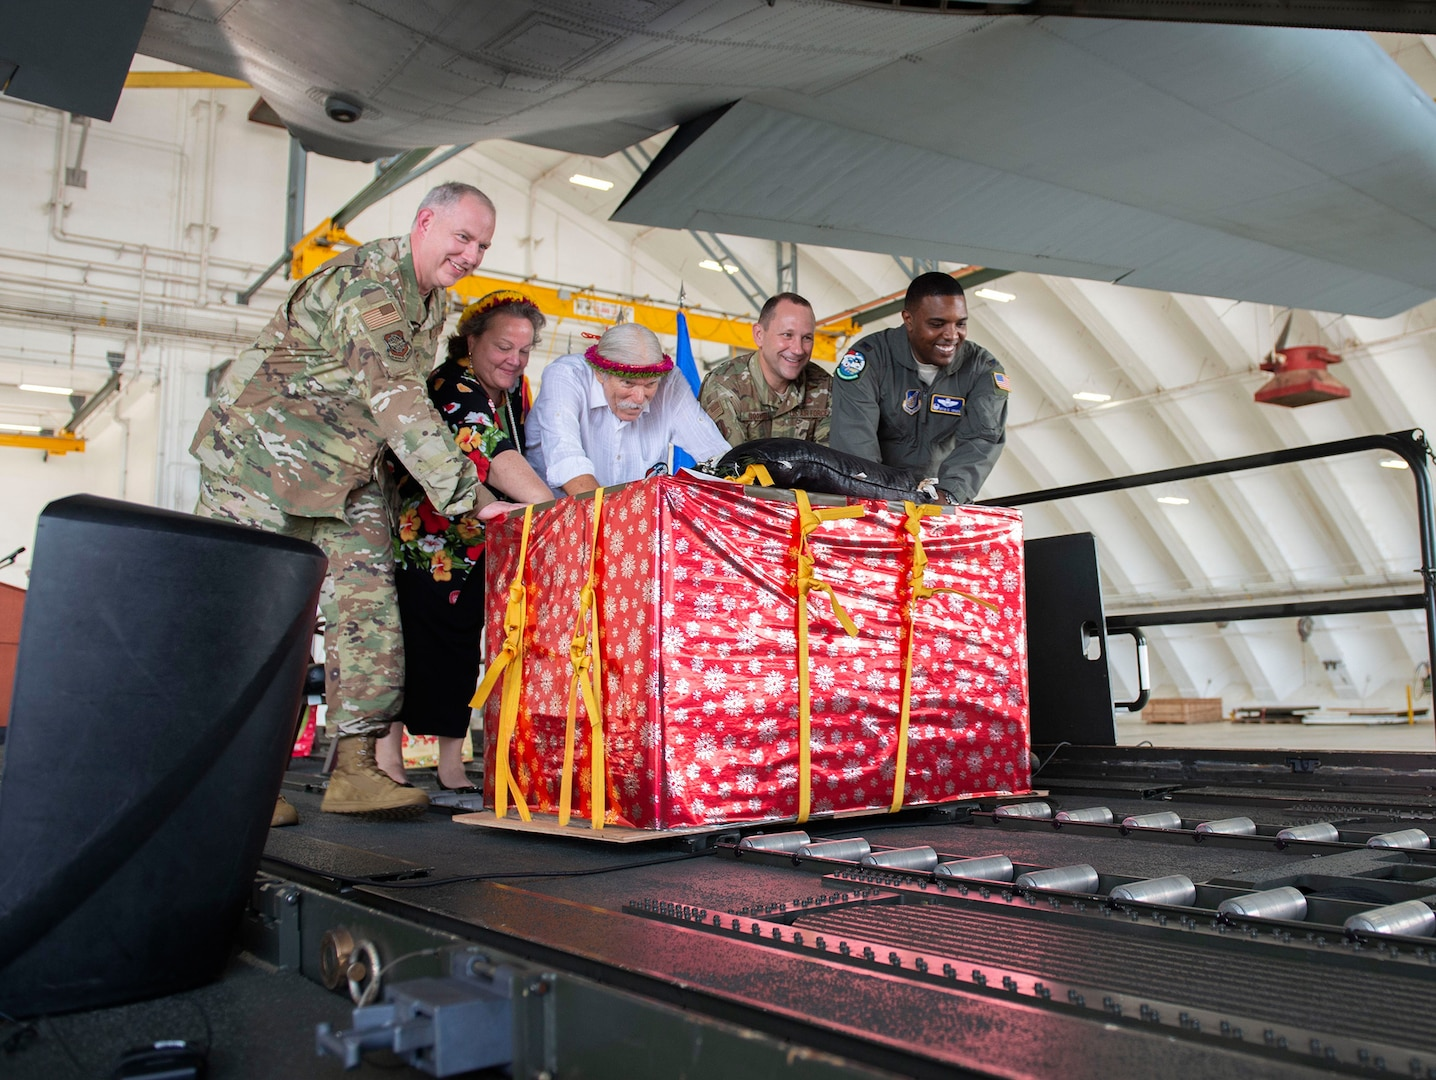 Operation Christmas Drop Commemorated With Push Ceremony